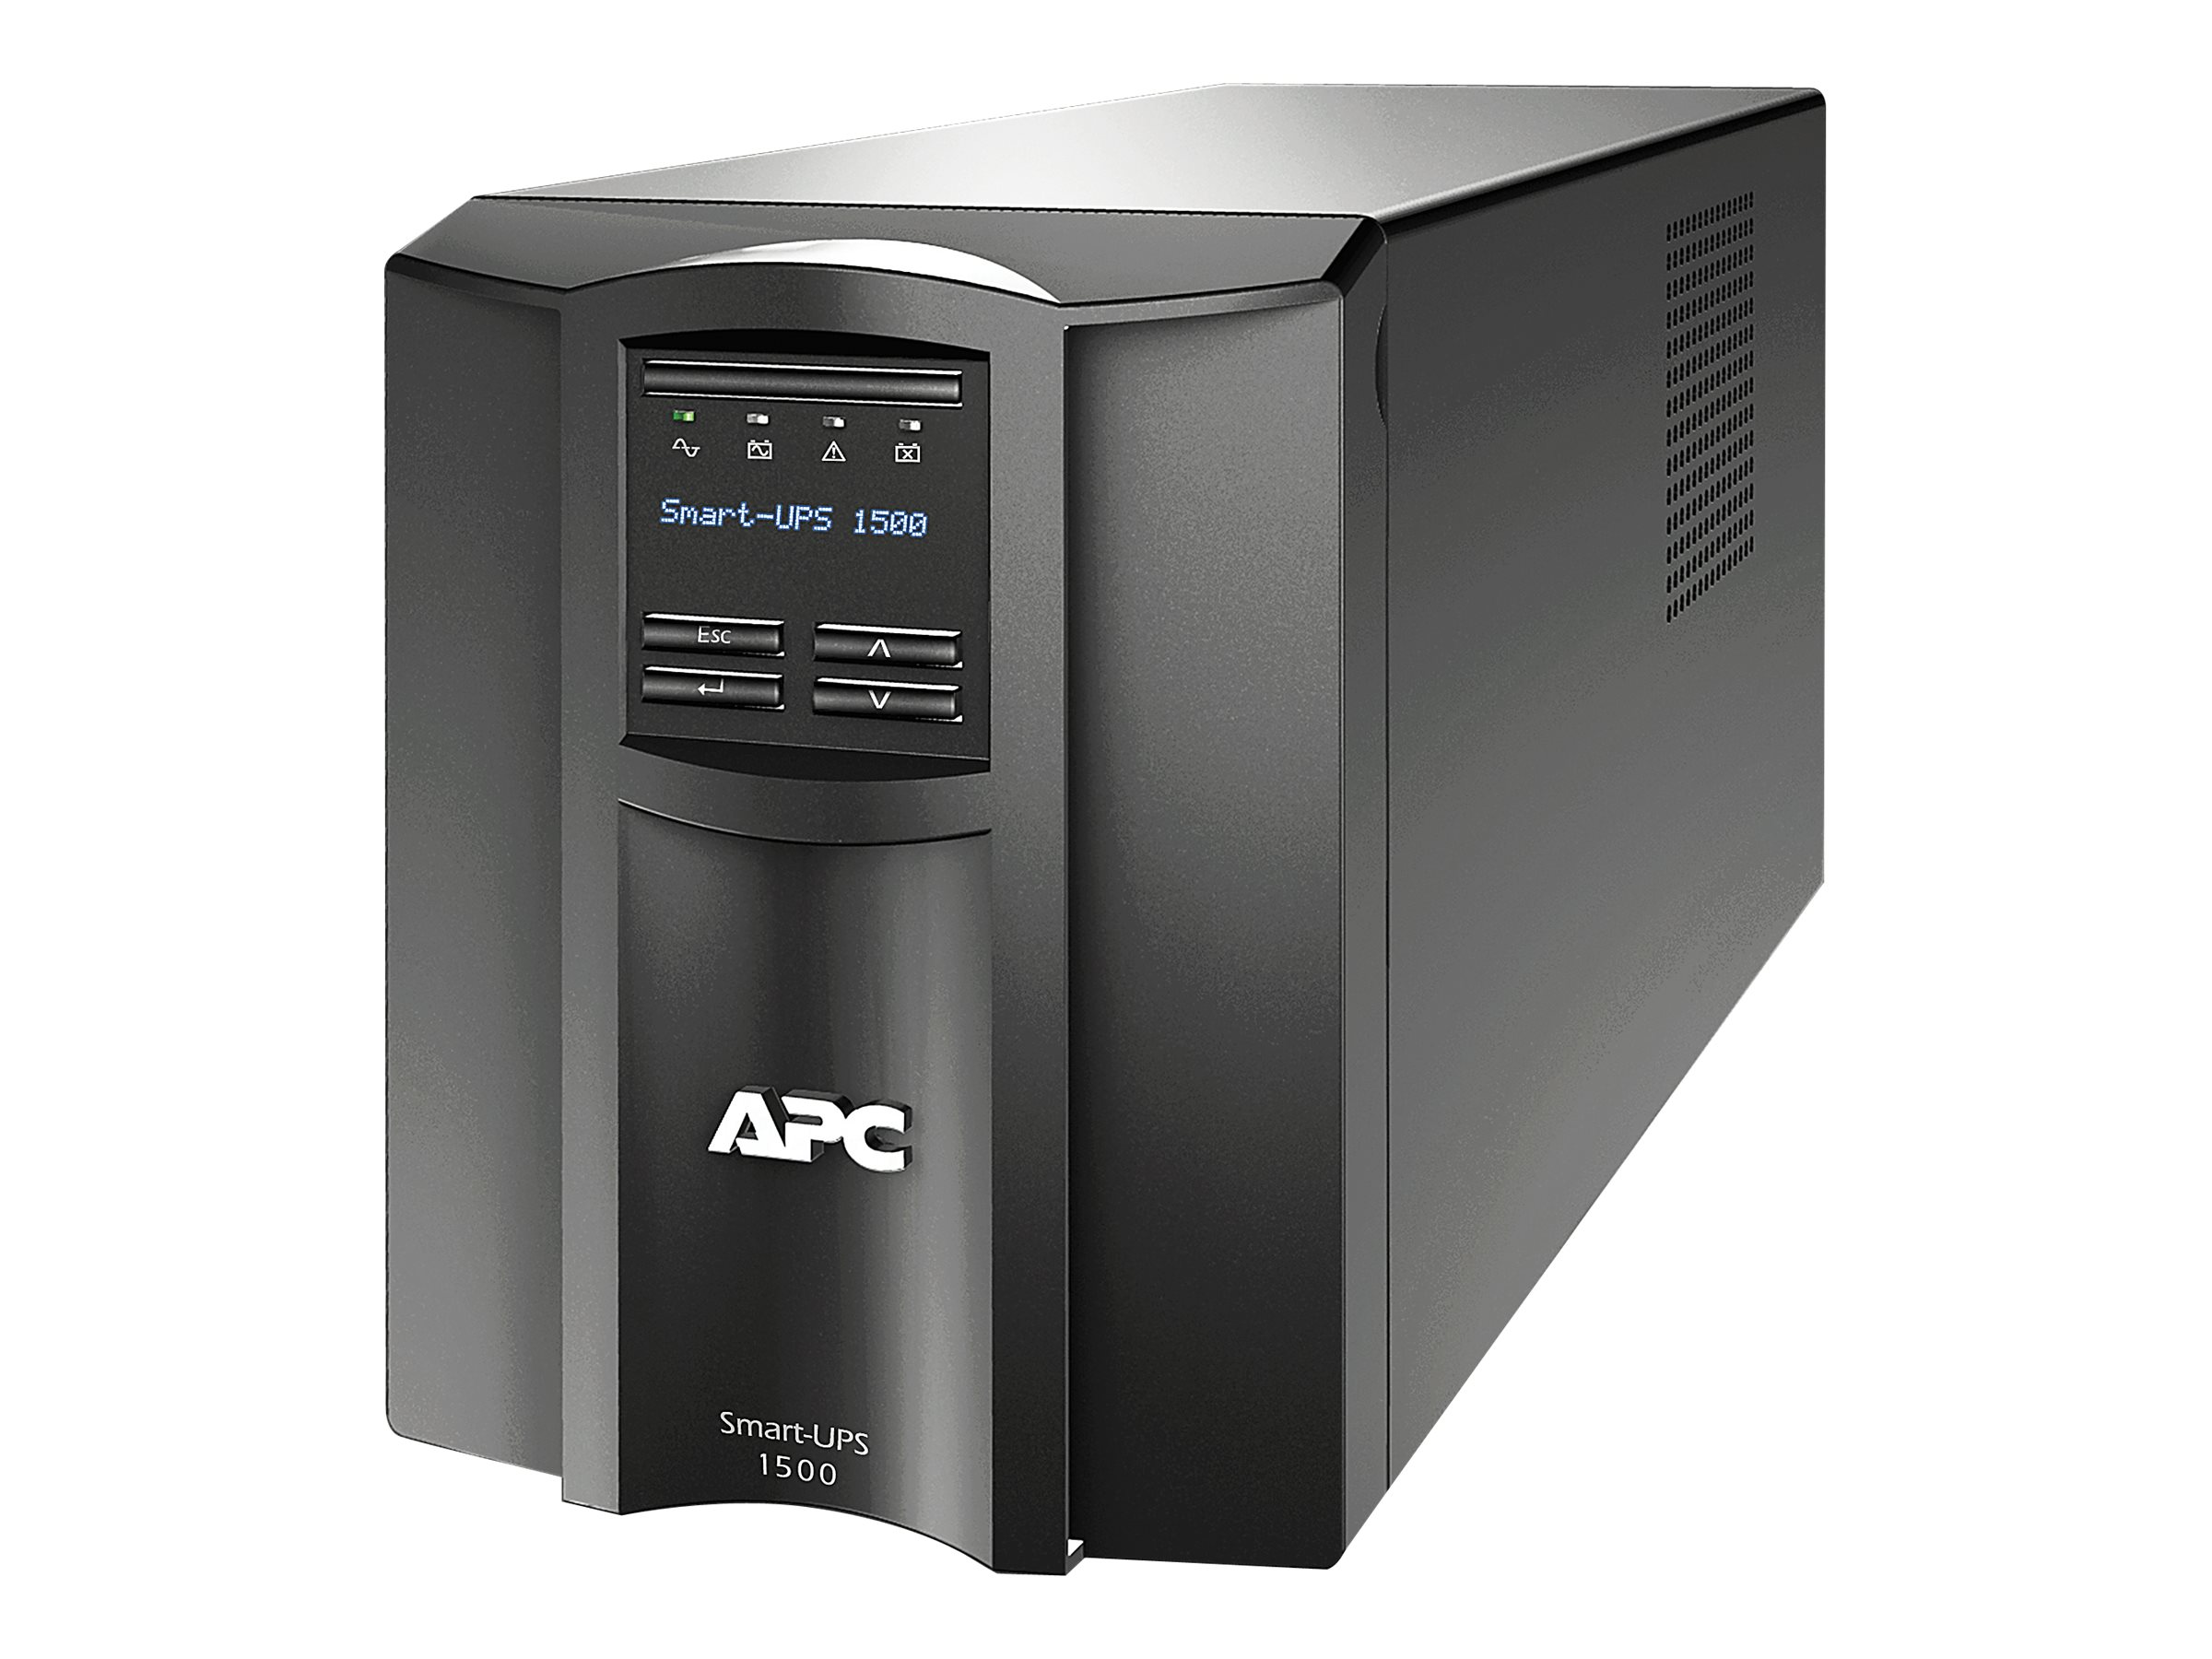 APC Smart-UPS 1500VA 980W 120V LCD Tower UPS (8) 5-15R Outlets USB Serial, Instant Rebate - Save $15